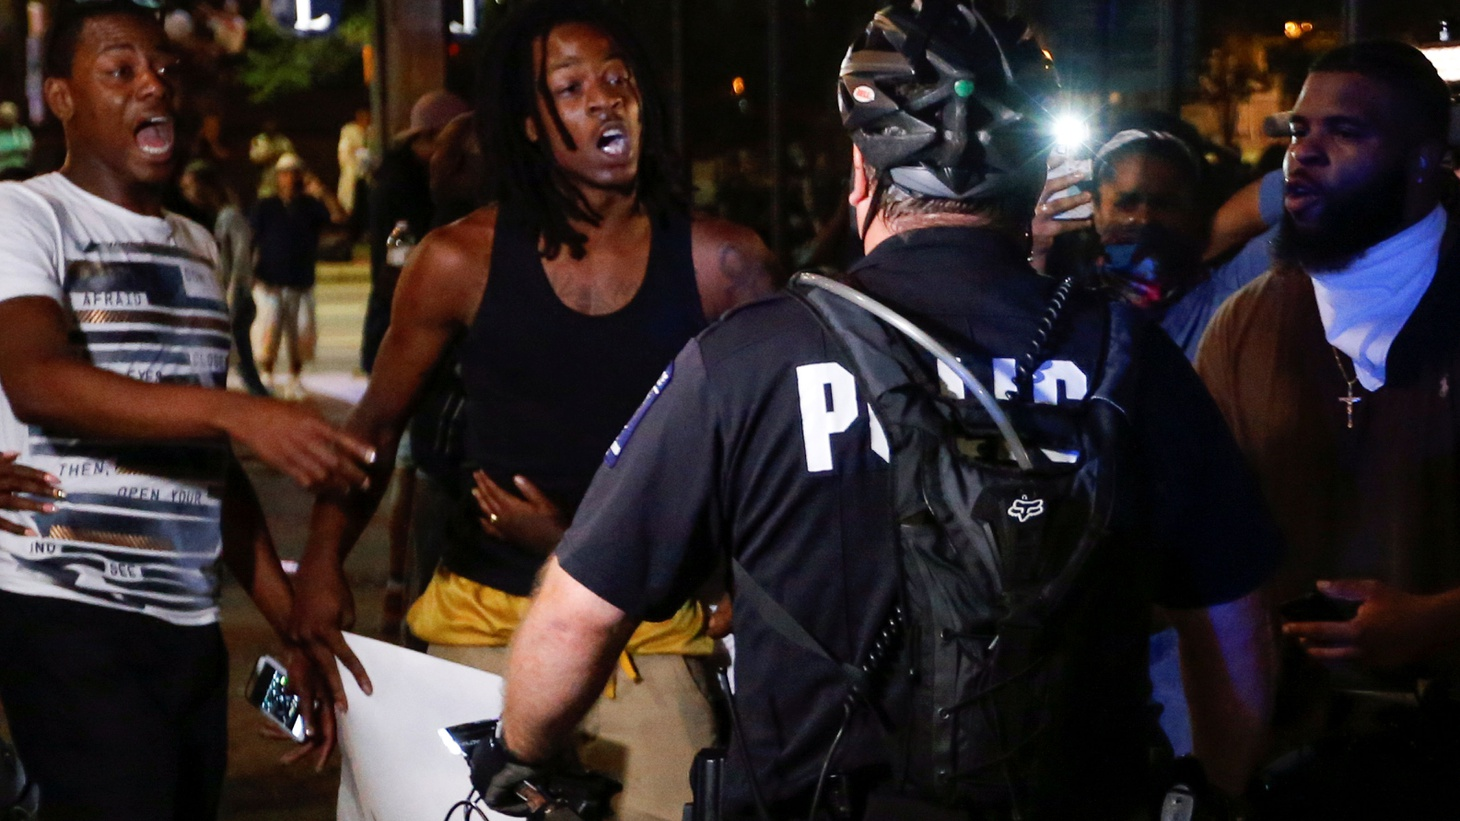 Should the Charlotte police department release video of an officer shooting?